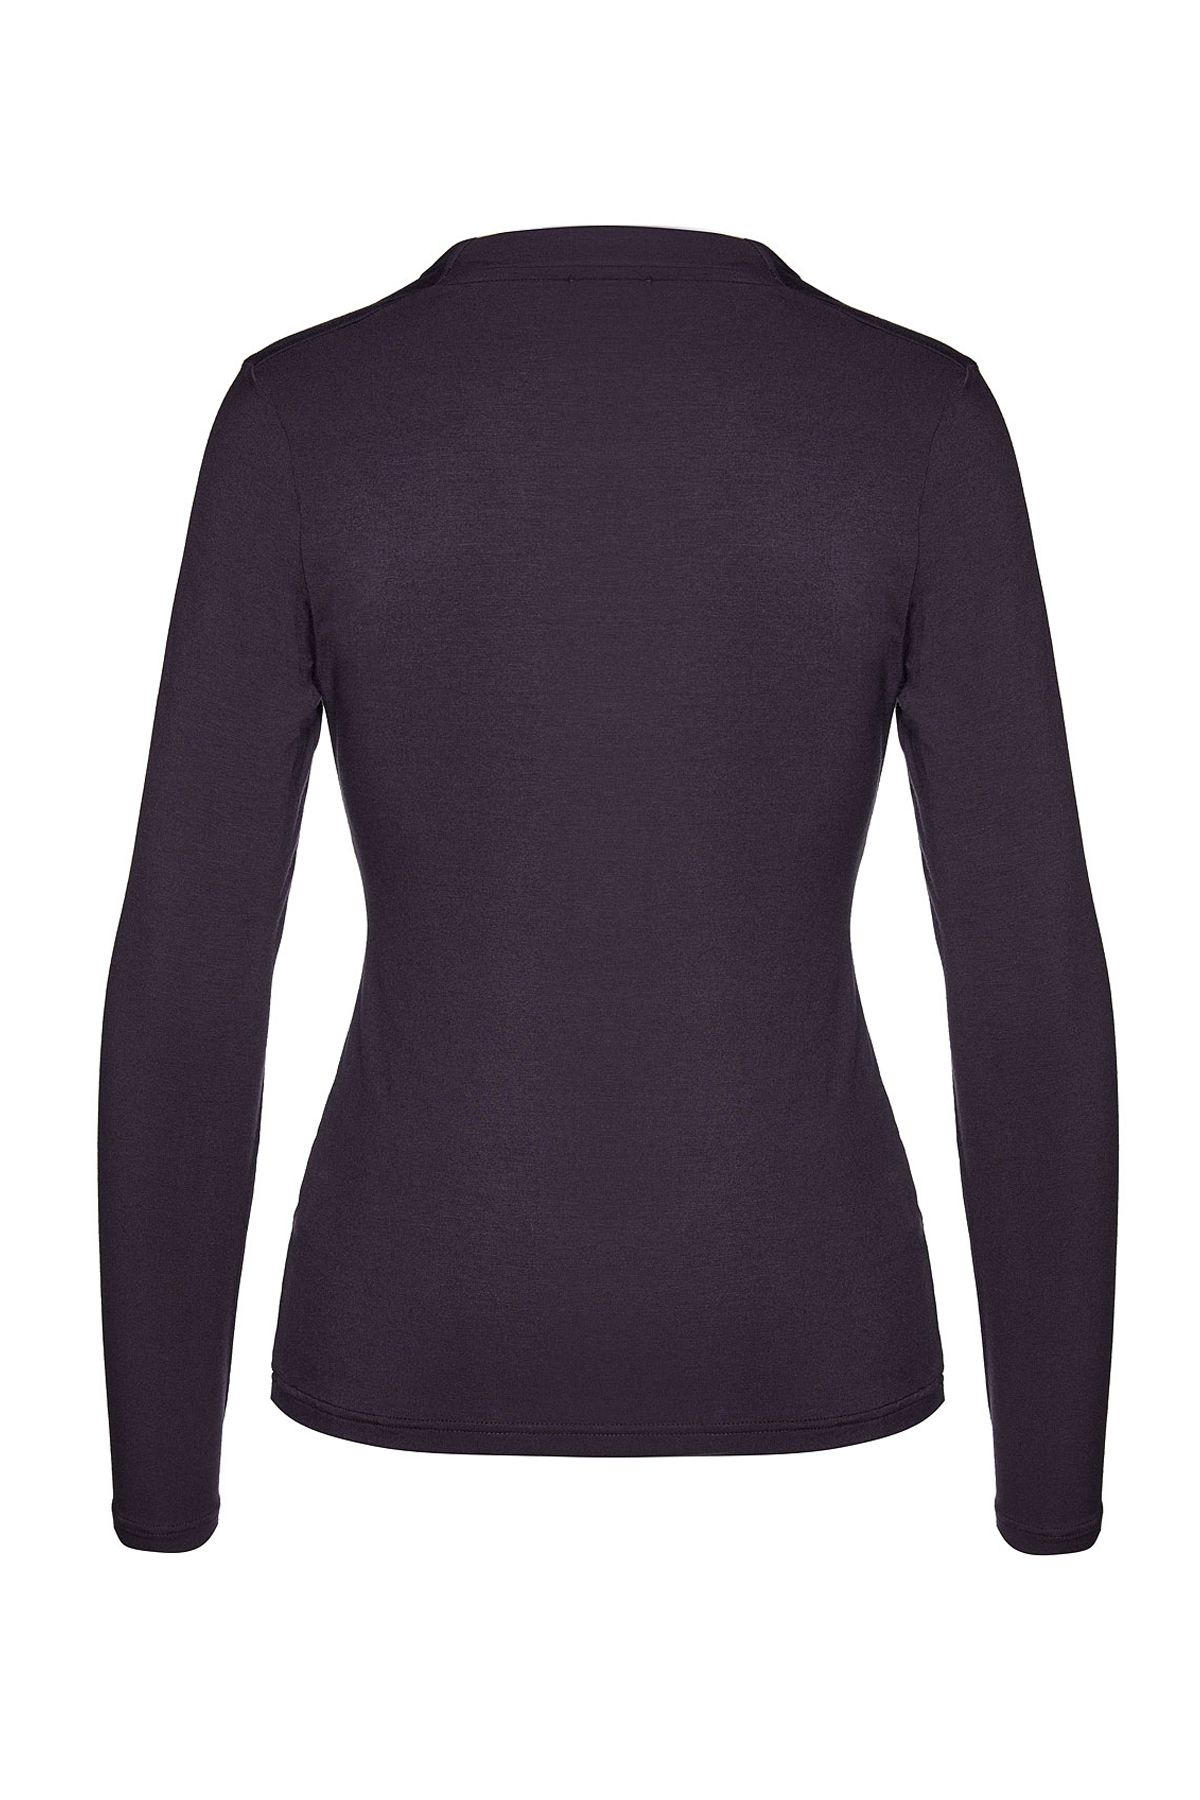 Ink Long Sleeve Faux Wrap Top in Stretch Jersey Sustainable Fabric